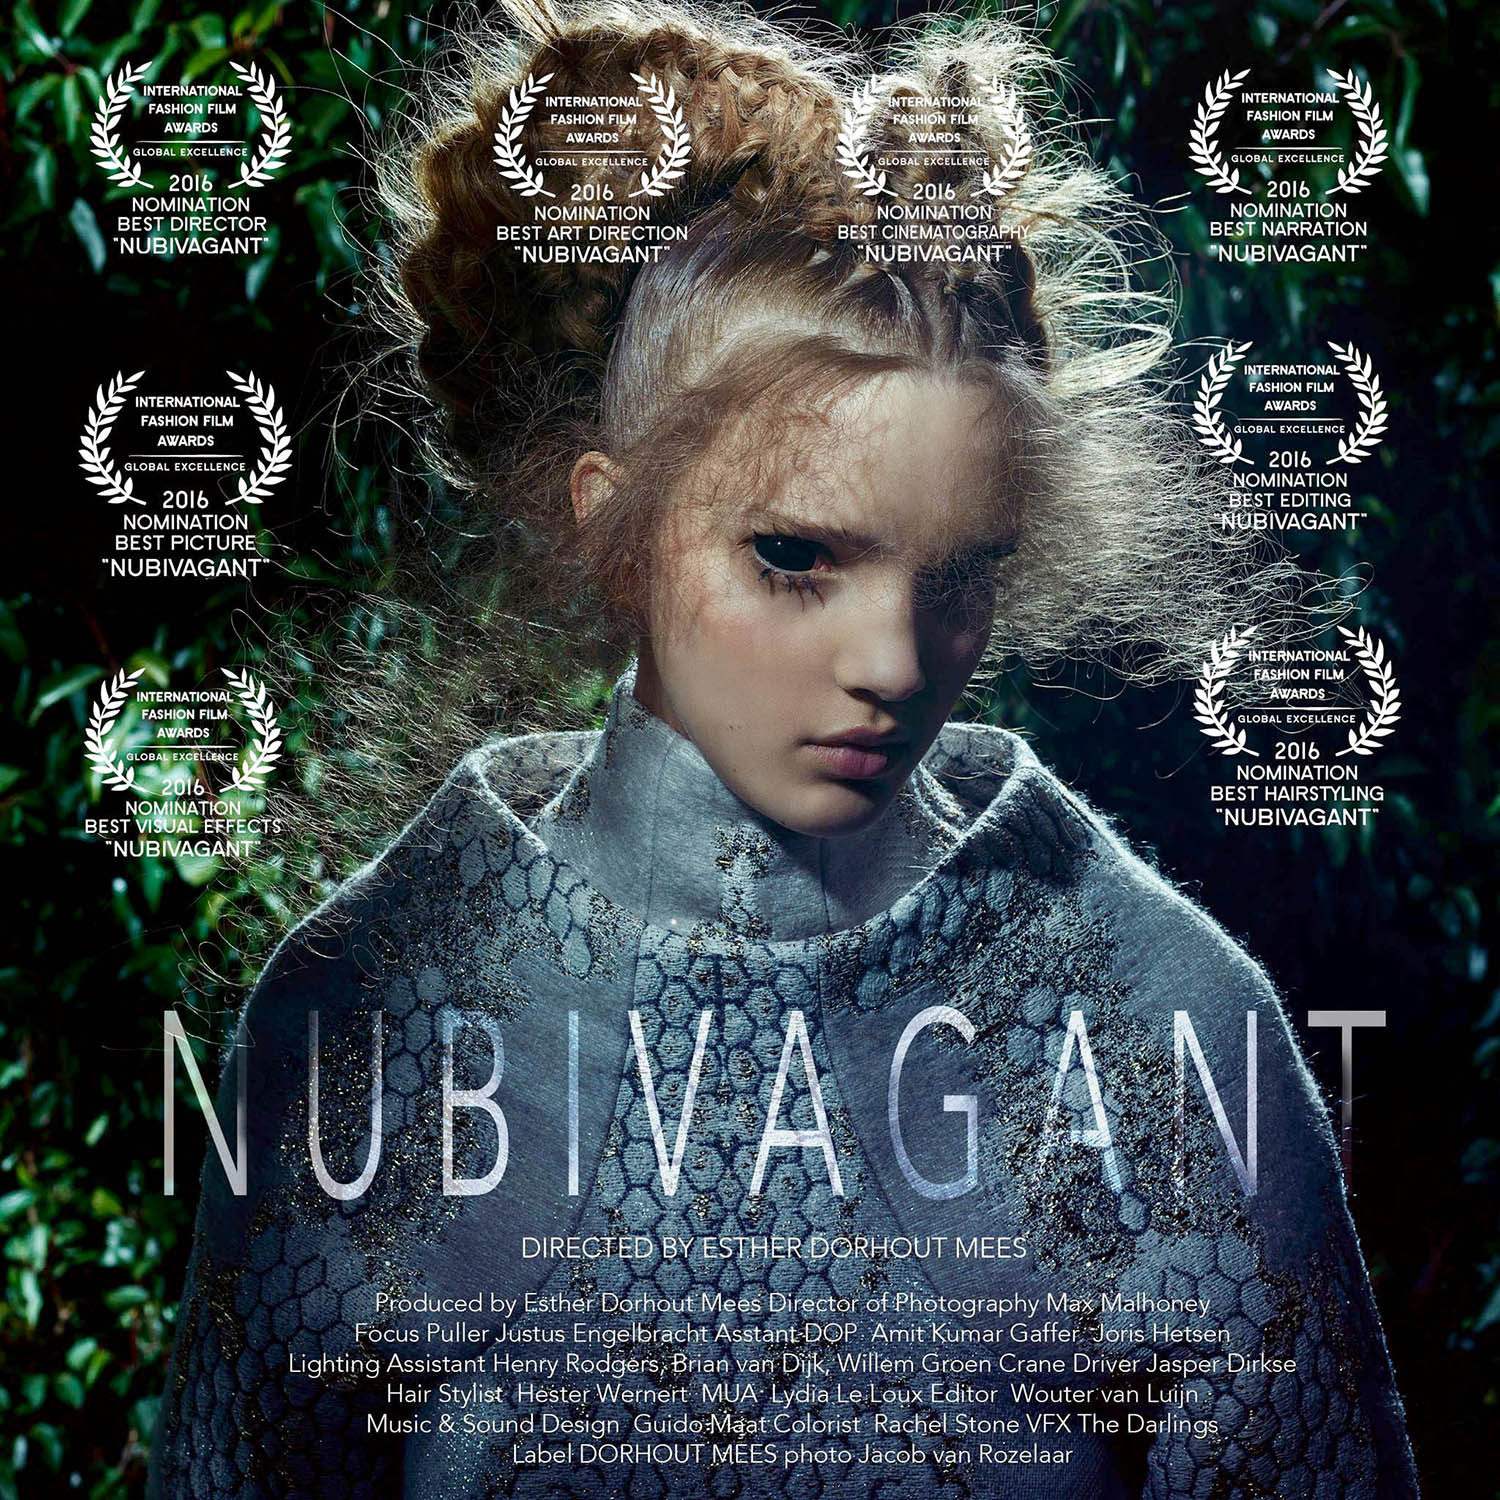 NUBIVAGANT Cinematic Fashion Short Film Directed by Esther Dorhout Mees 2016